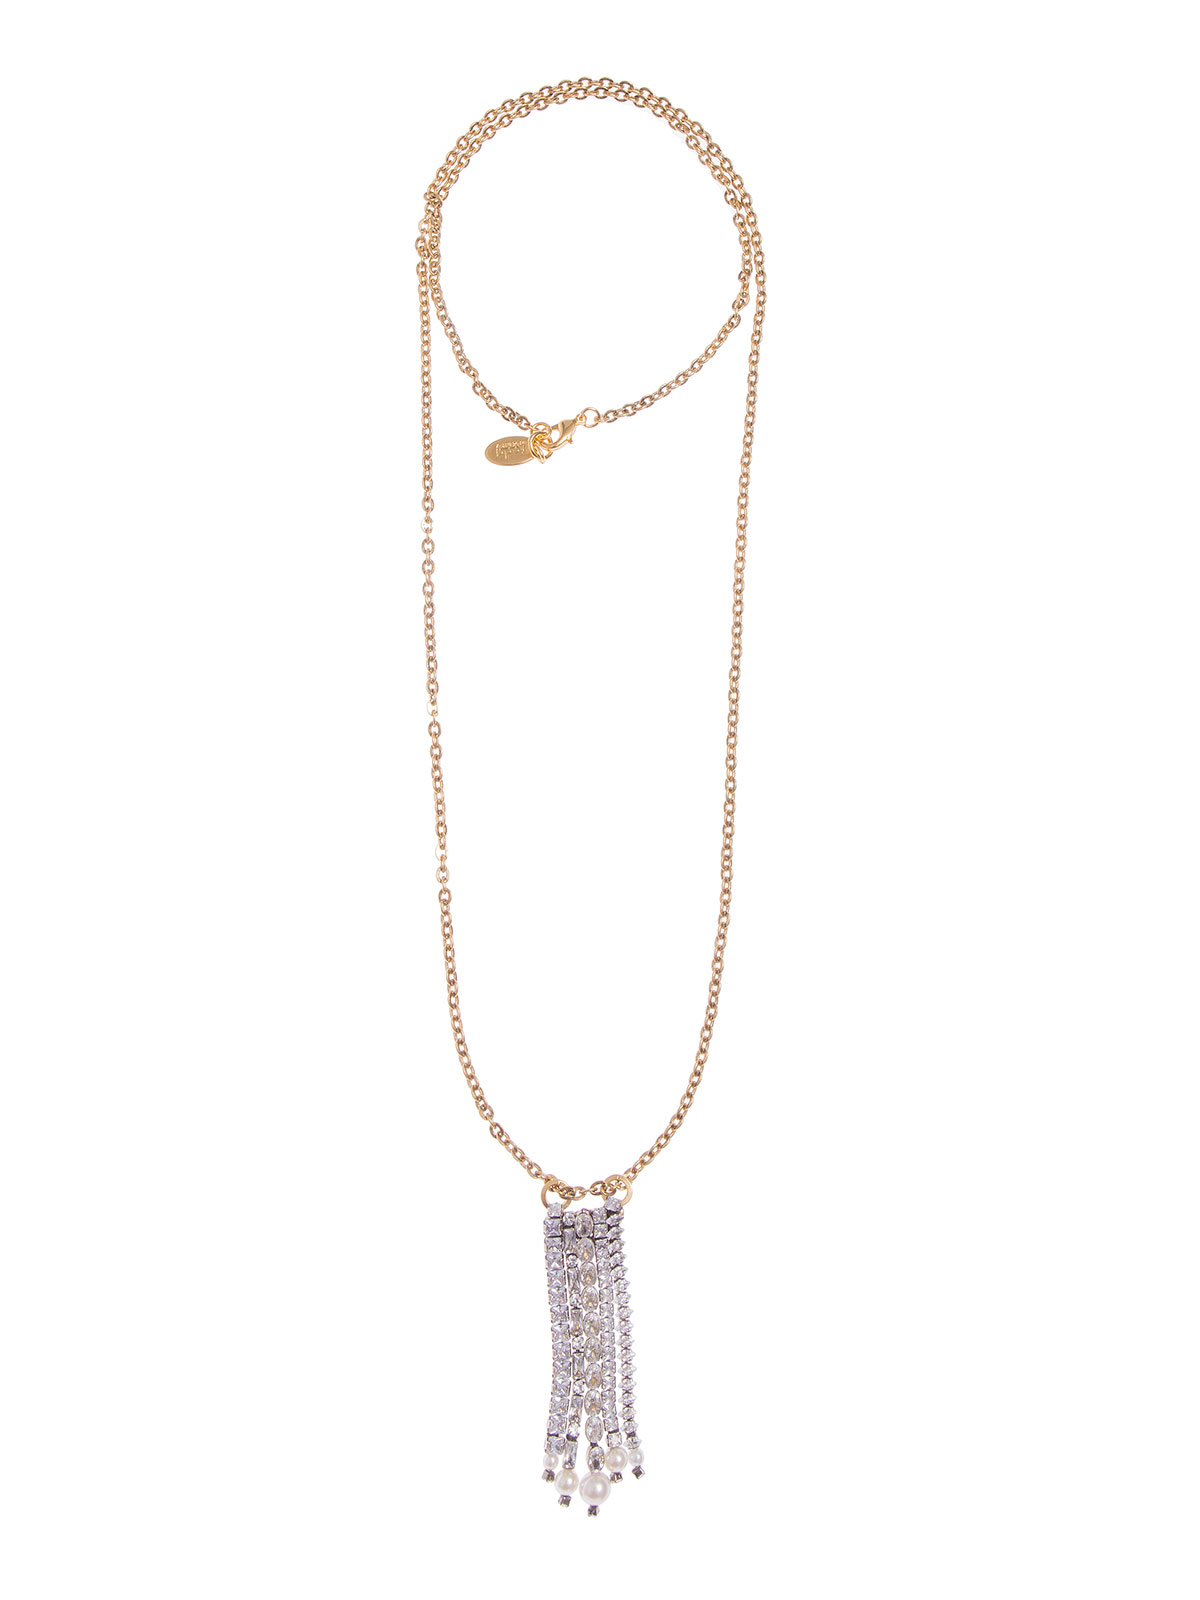 Chain necklace with crystal cascade